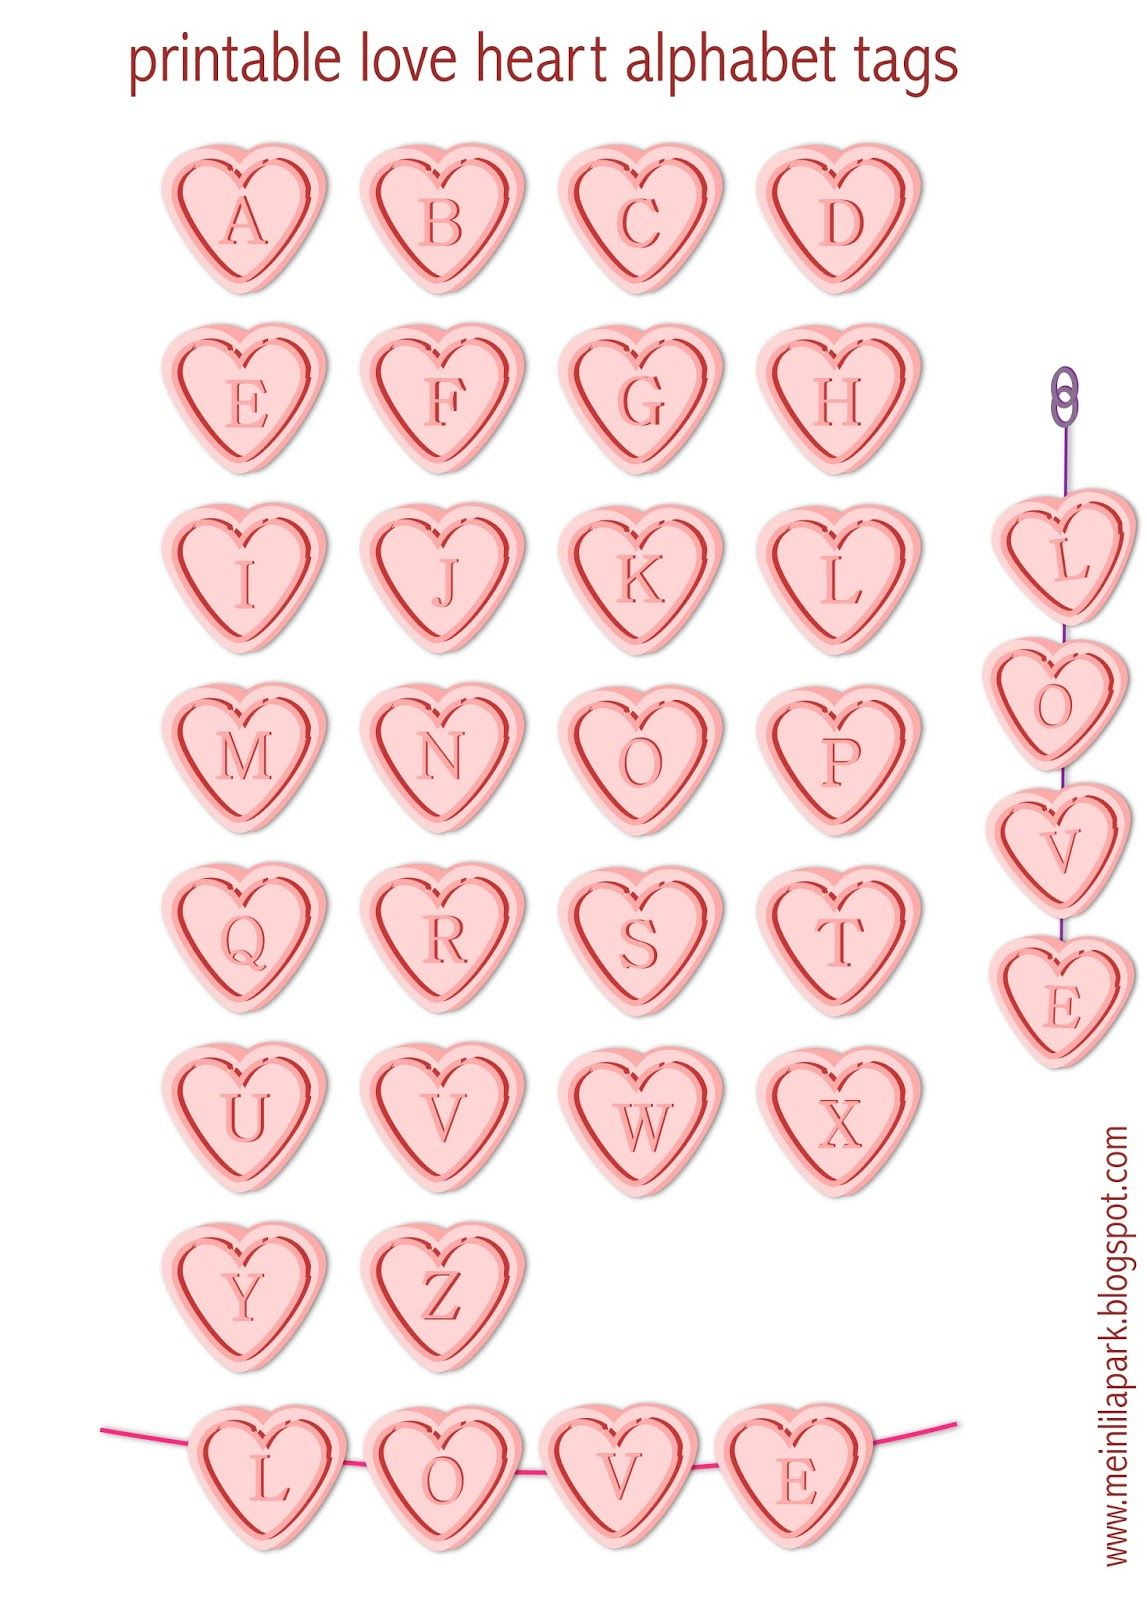 Meinlilapark Diy Printables And Downloads